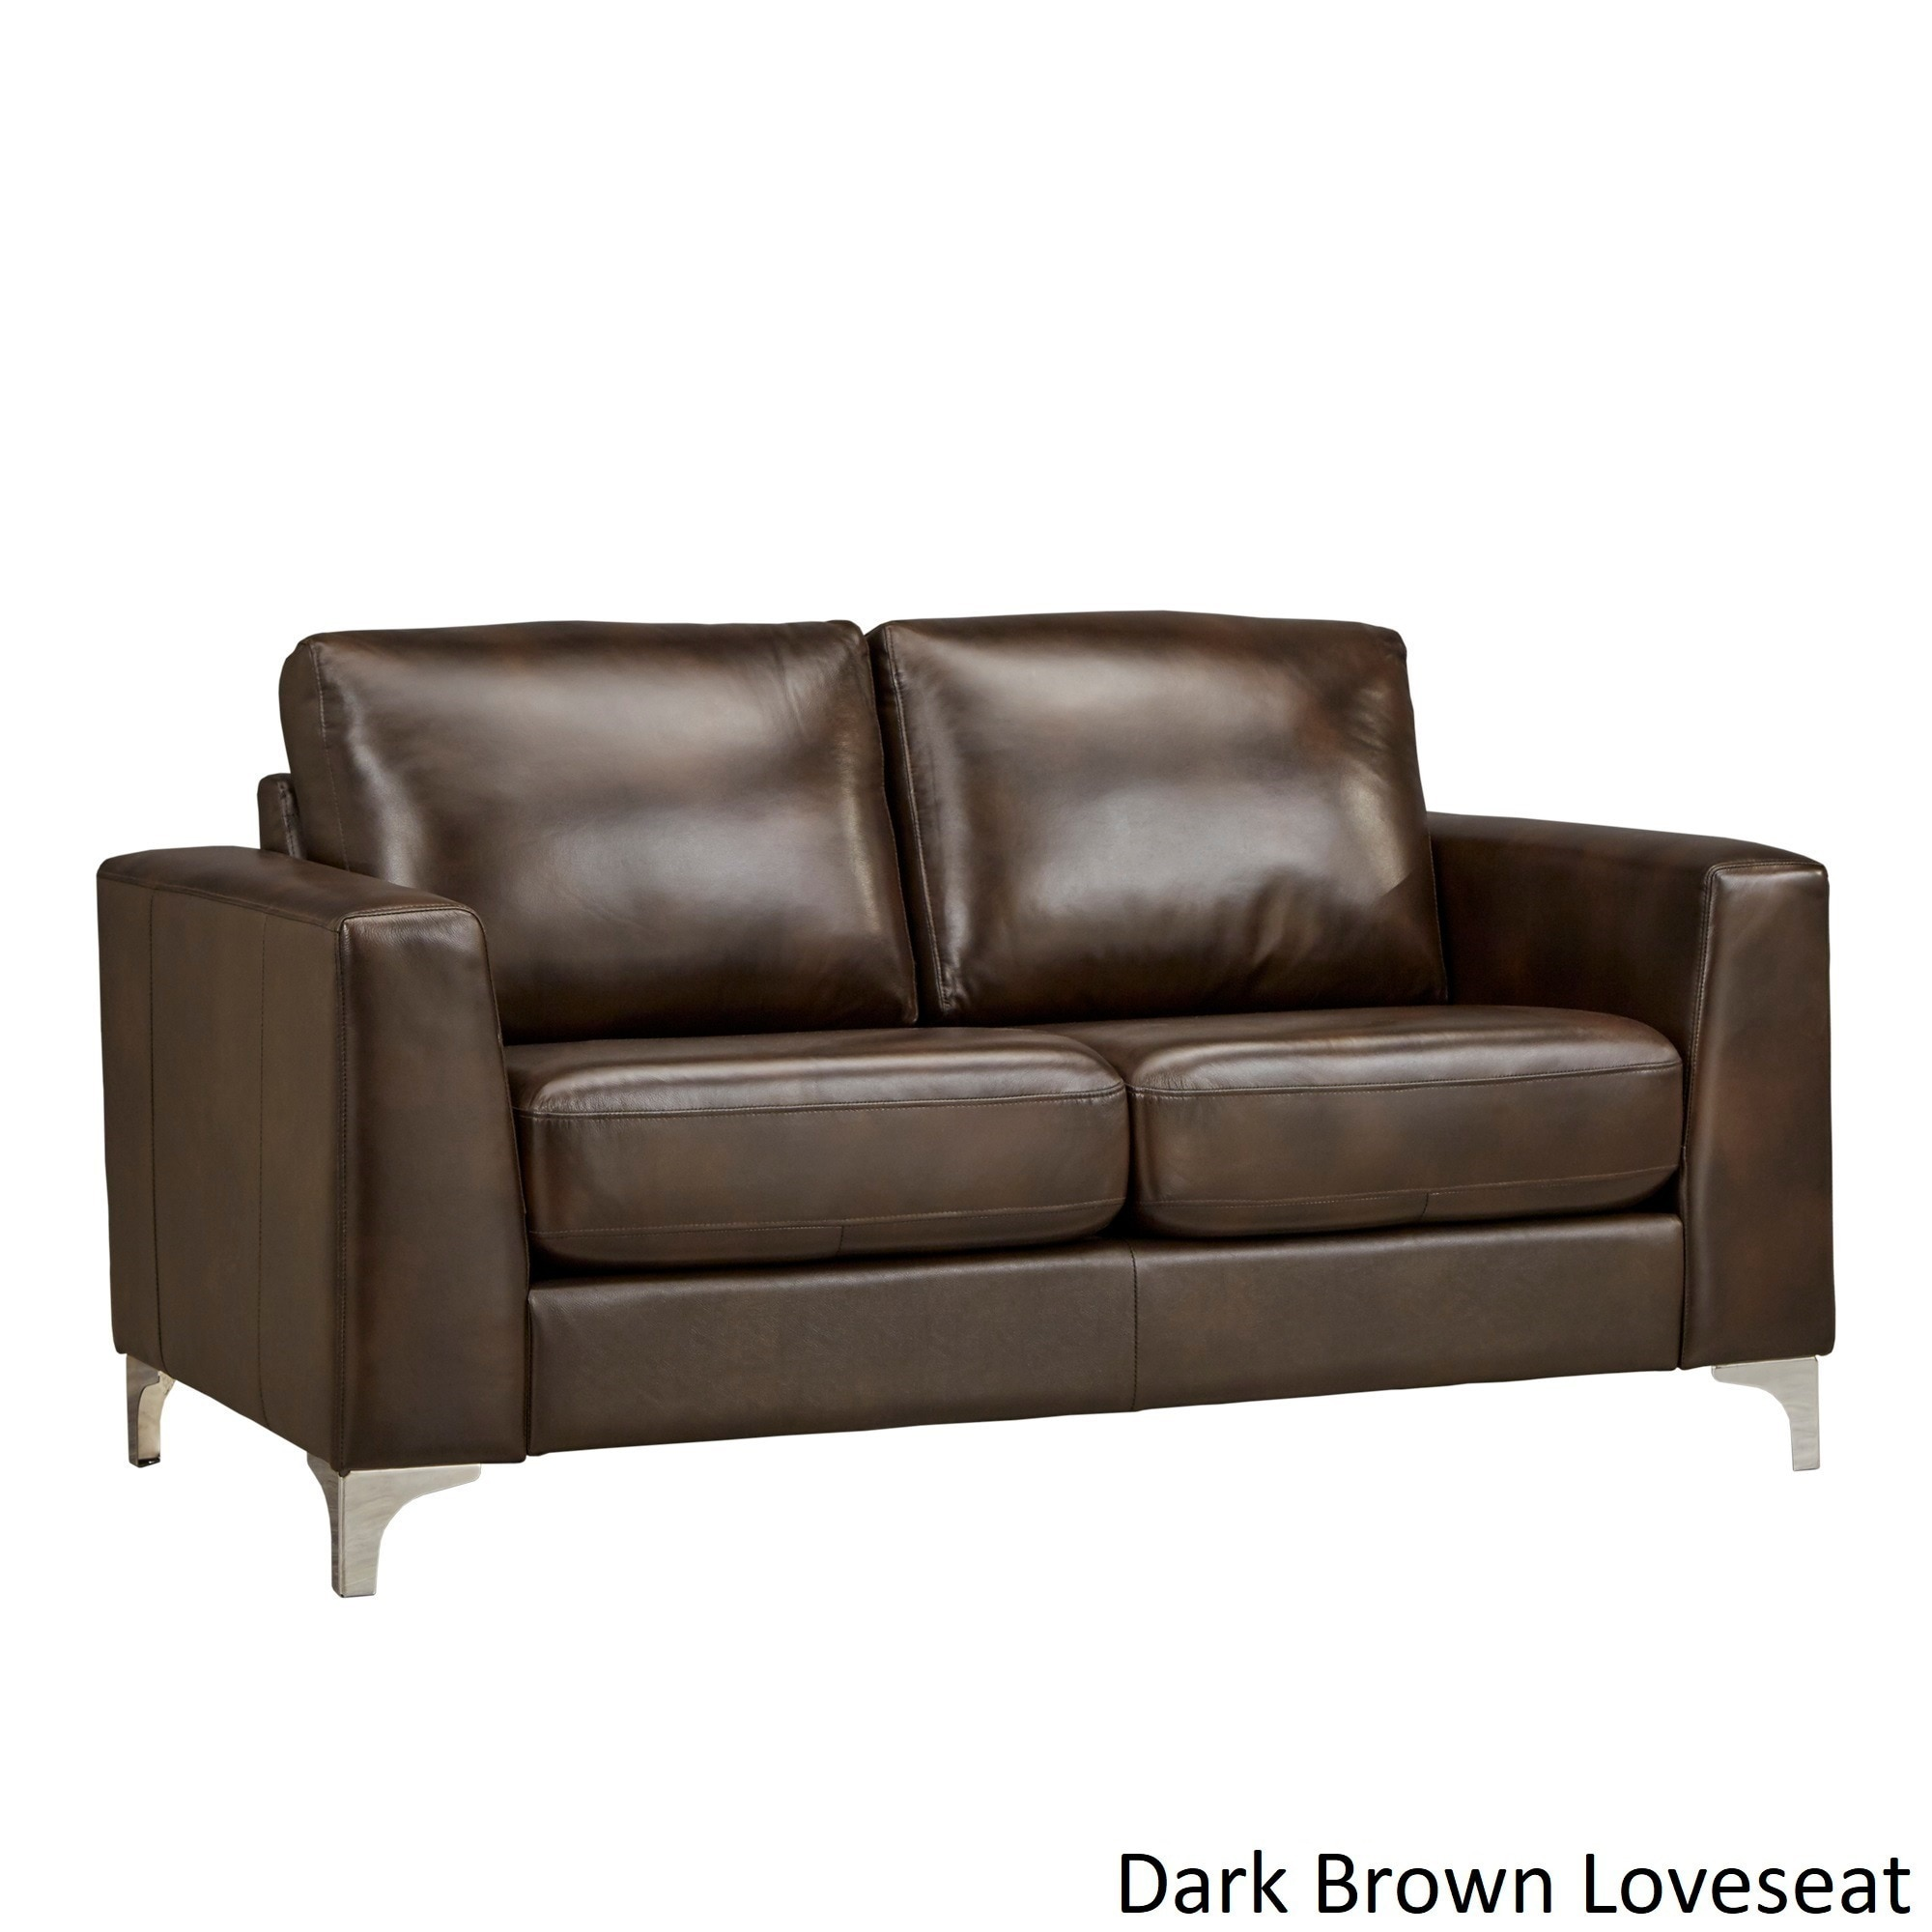 Brown Leather Sofas Couches Online At Our Best Living Room Furniture Deals